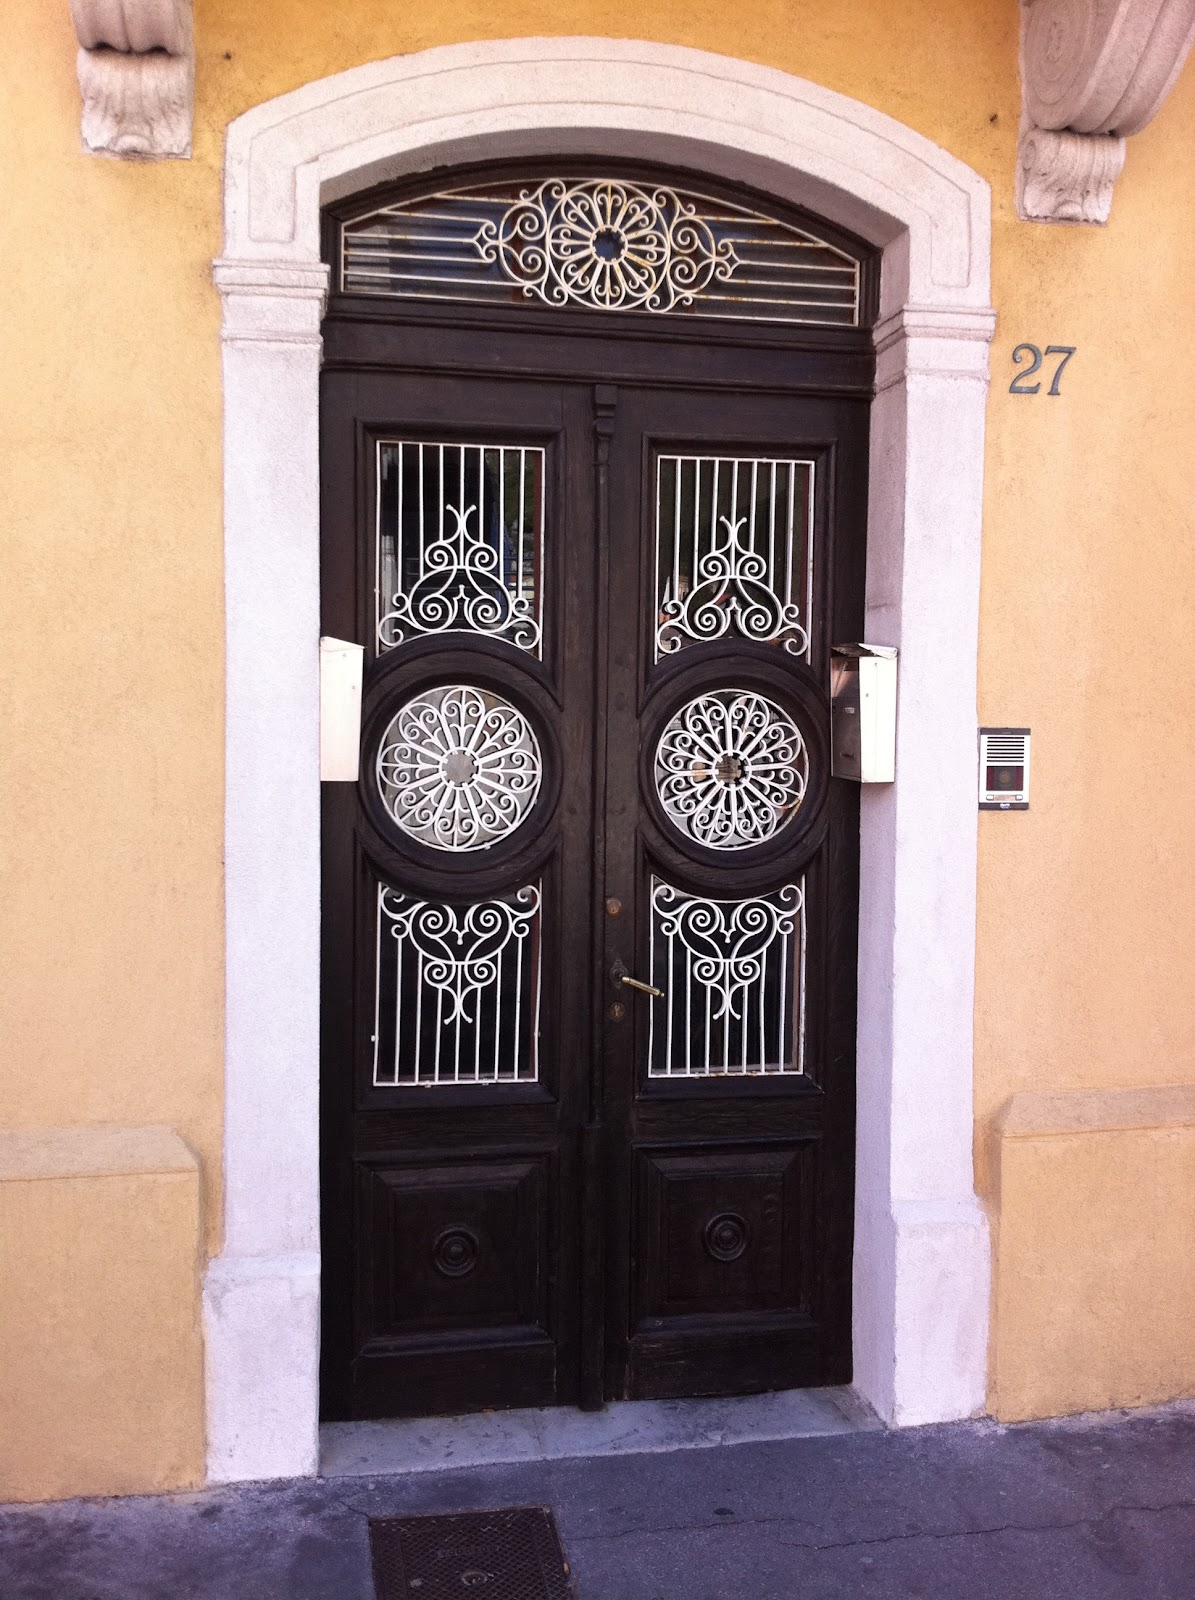 1600 #AF611C Buccari. Nice Metalwork To Compliment The Beautiful Wooden Doors. image Beautiful Wooden Doors 46731195